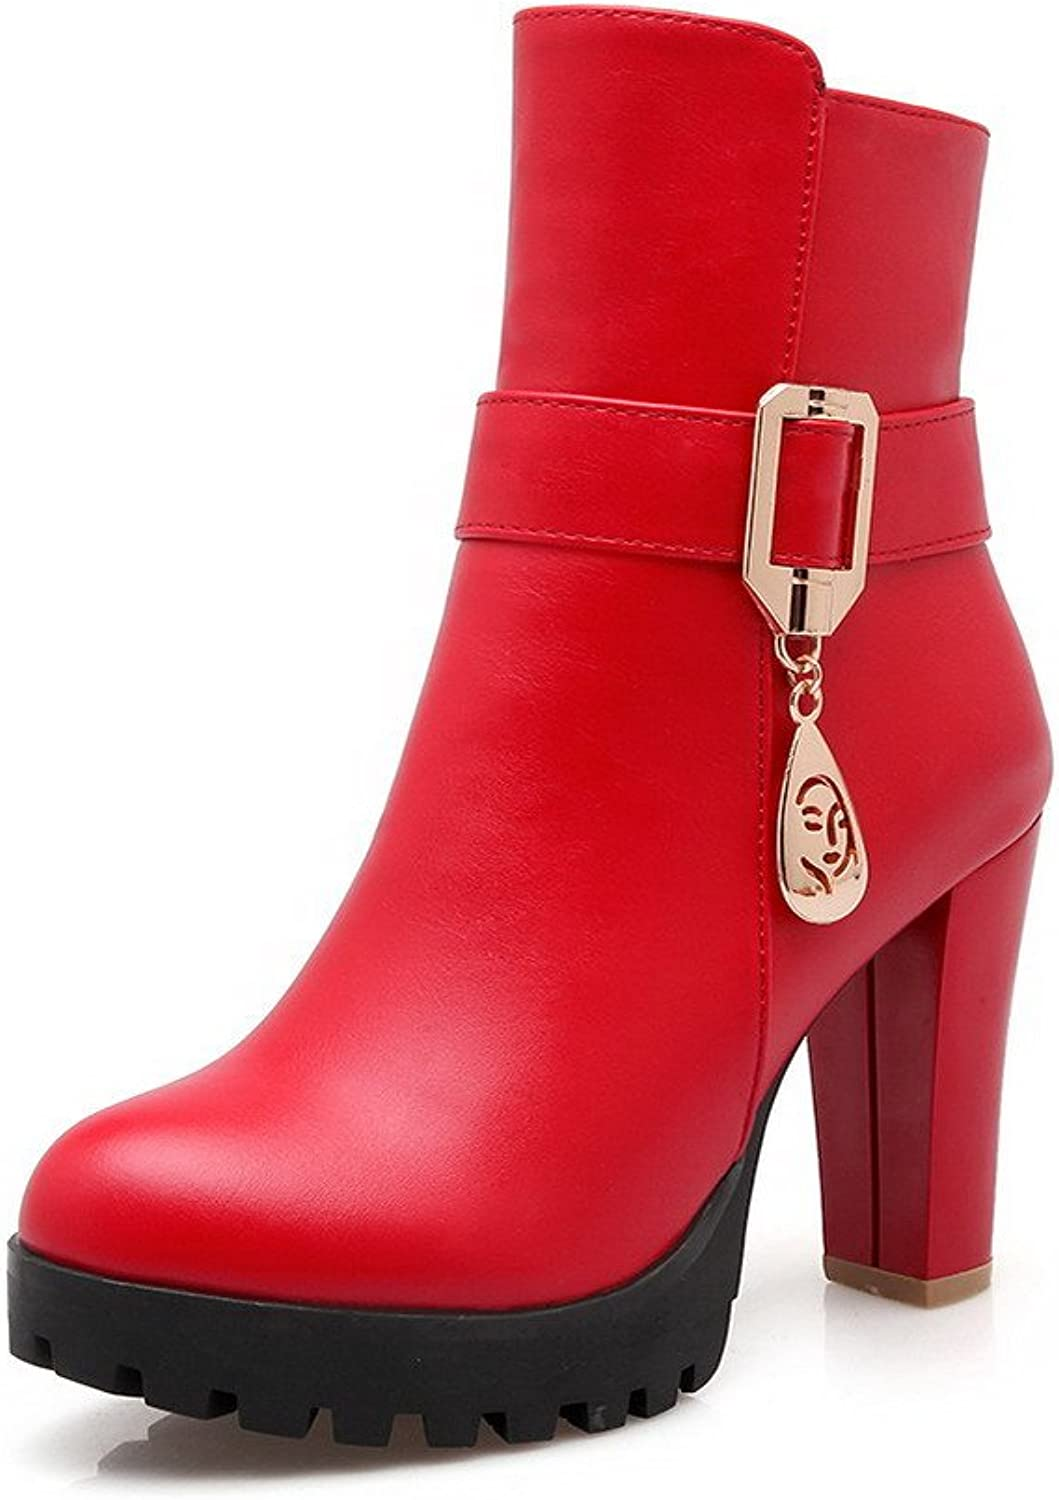 AllhqFashion Women's Low Top Solid Zipper Round Closed Toe High Heels Boots with Charms